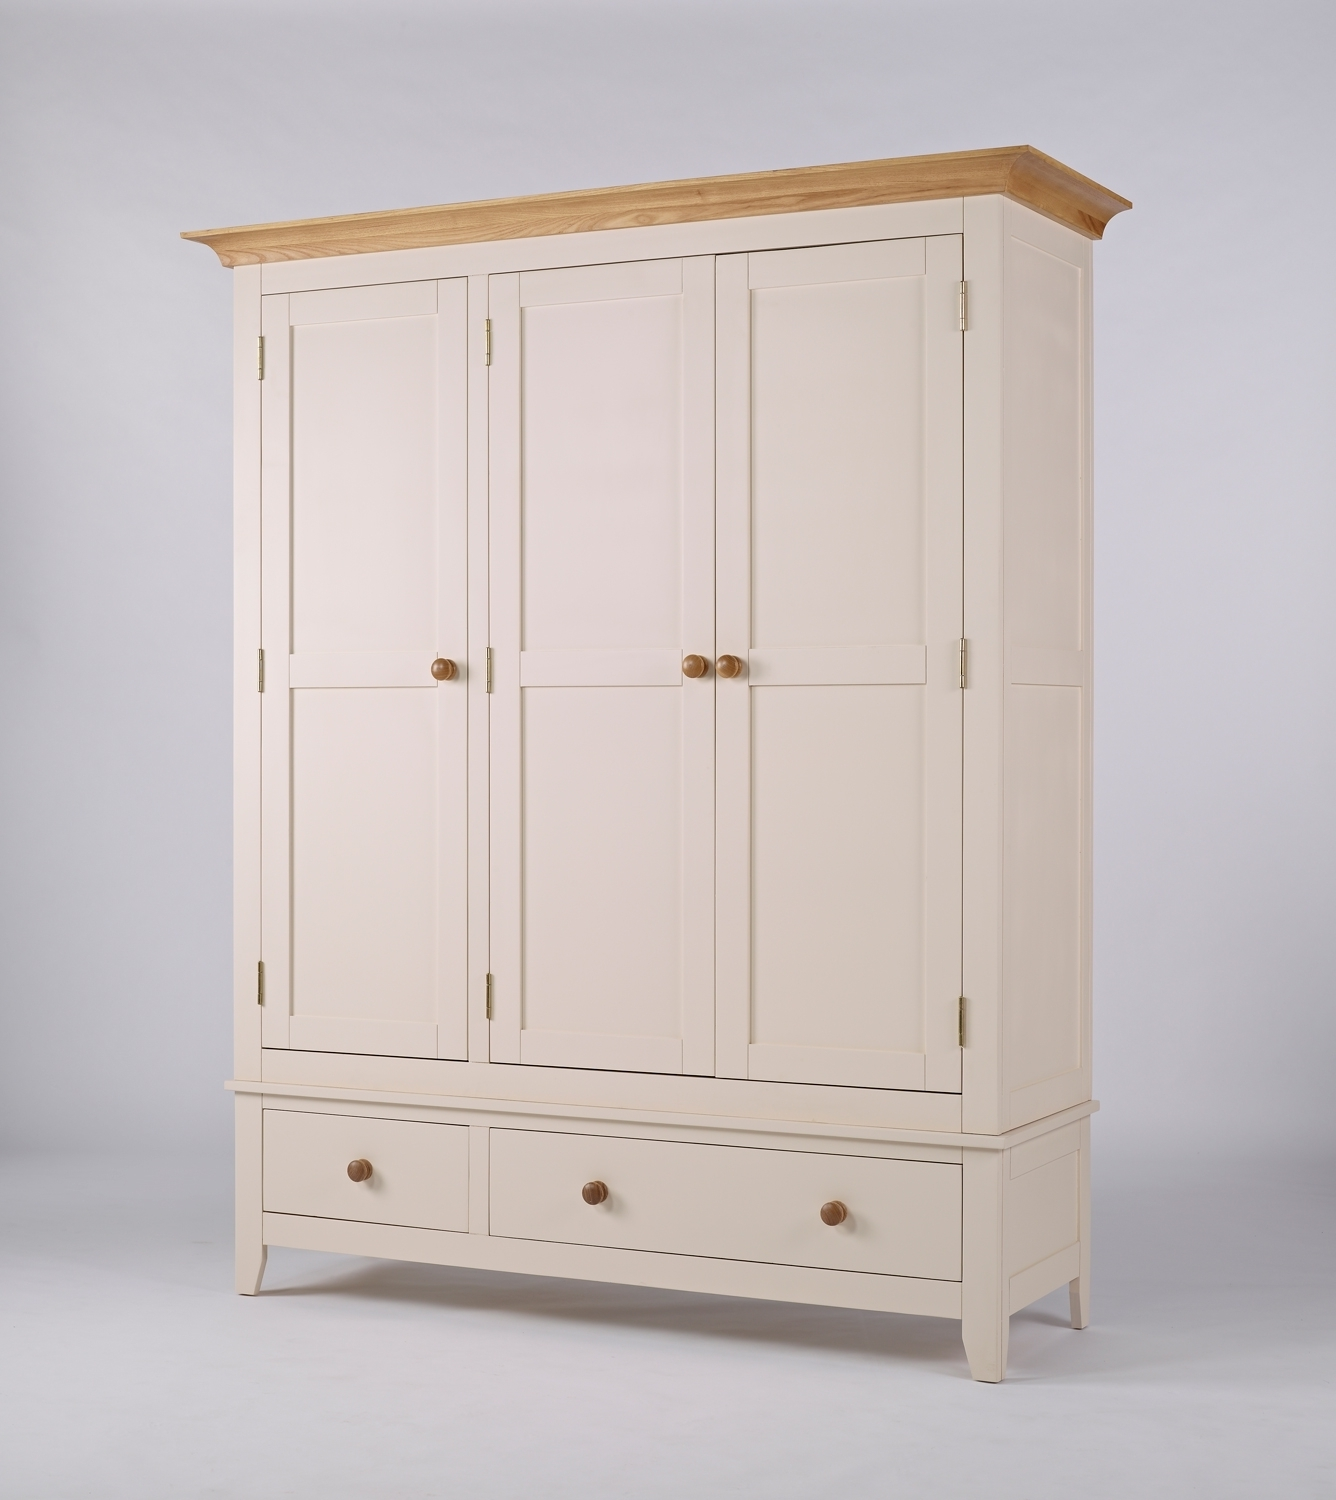 Painted Triple Wardrobes With Best And Newest Camden Painted Pine & Ash Triple Wardrobe With Drawers (View 10 of 15)